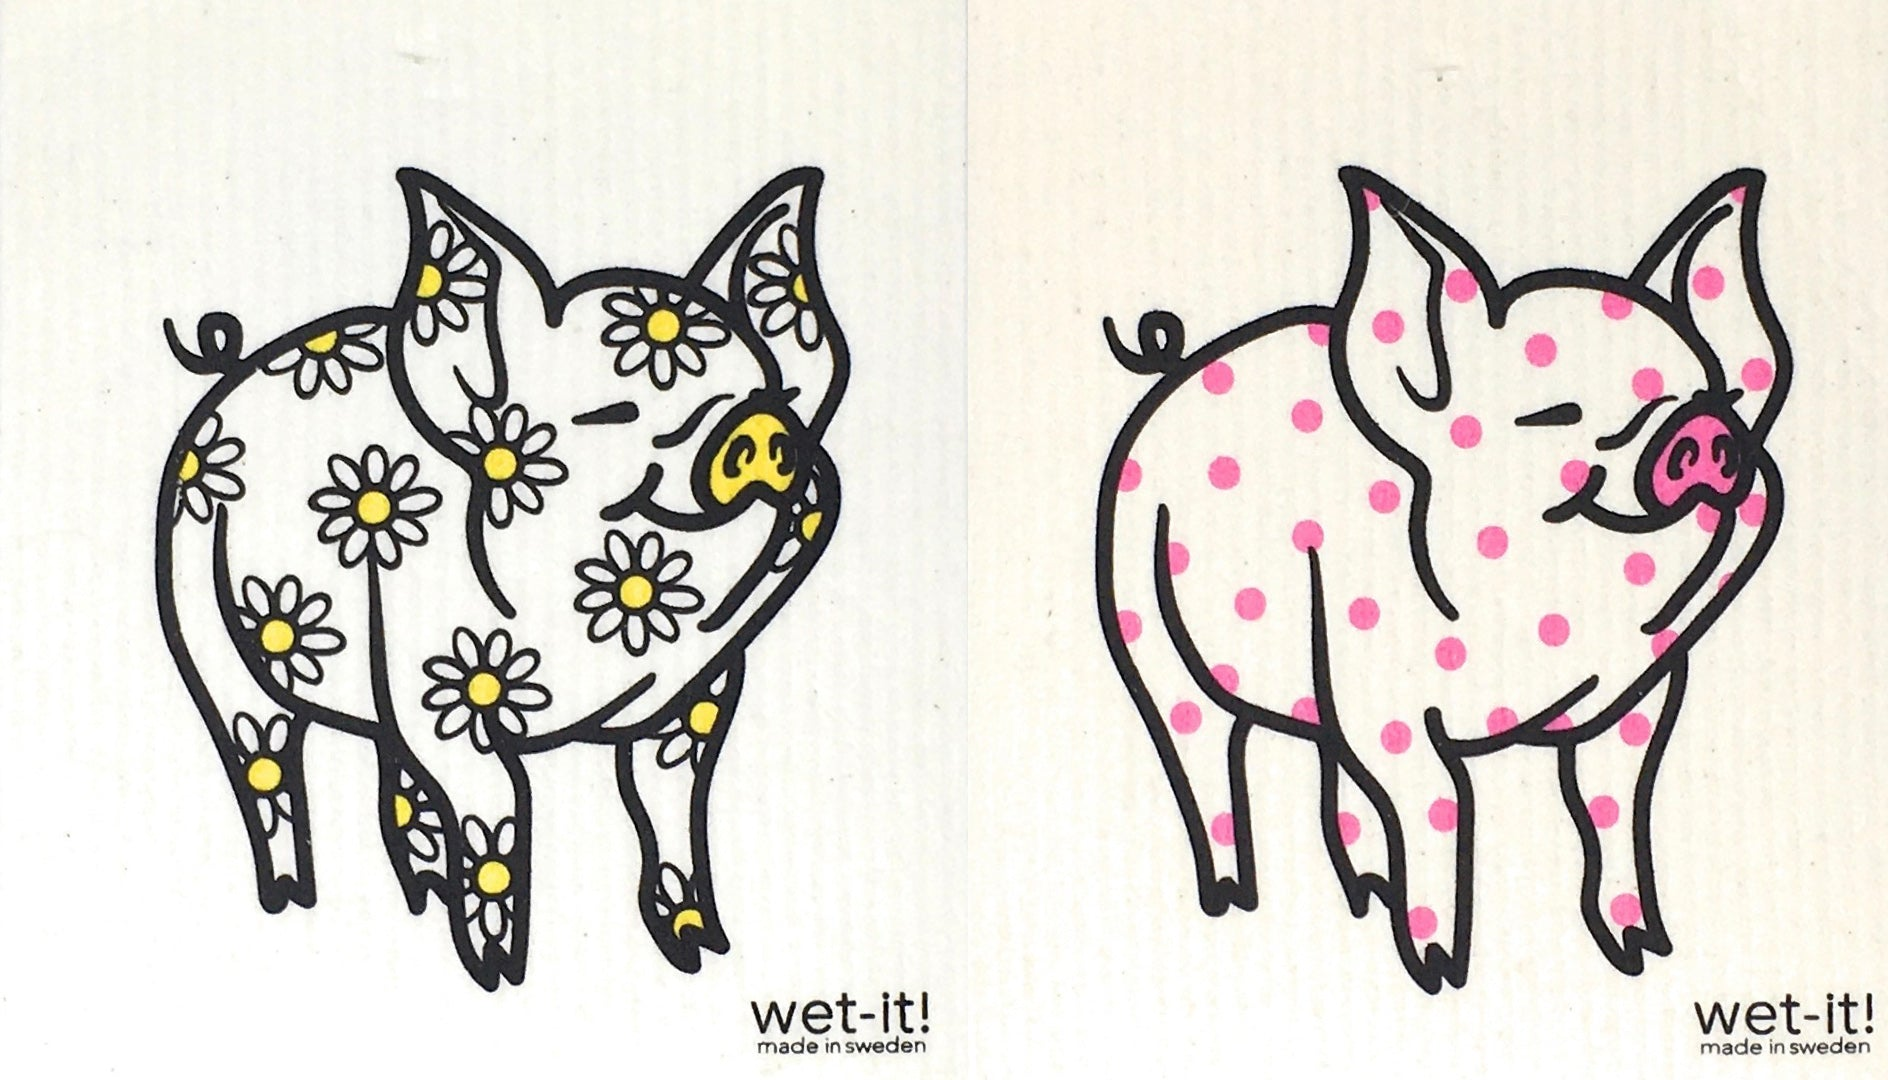 Swedish Treasures Wet-it! Dishcloth & Cleaning Cloth - 2 pack - Daisy Pig & Polka Pig